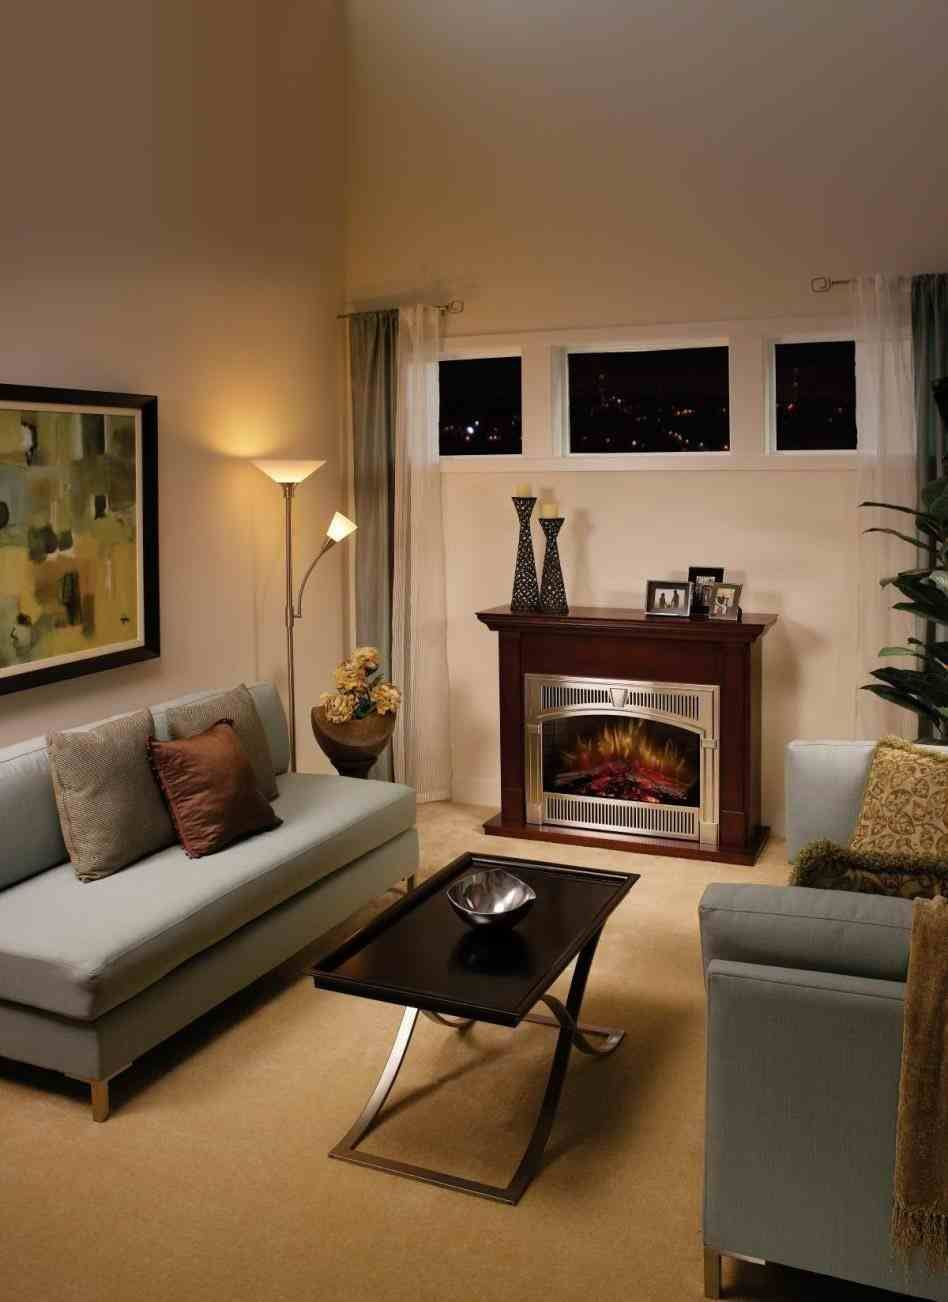 small living room designs with fireplace | Home Ideas | Pinterest ...